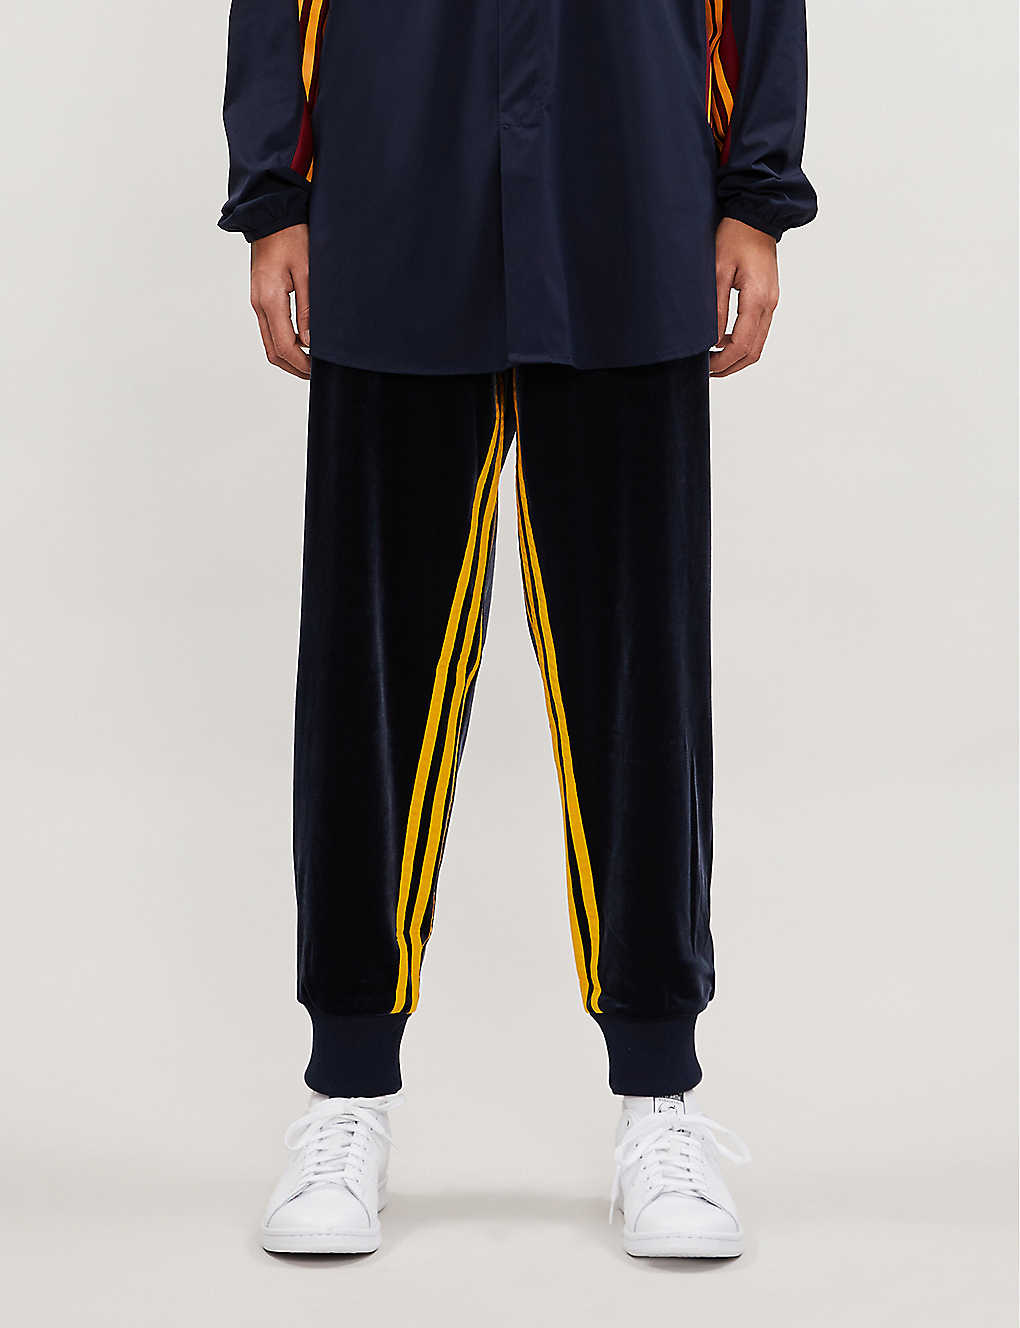 ADIDAS STATEMENT: adidas x BED j.w. FORD colour-blocked jersey jogging bottoms